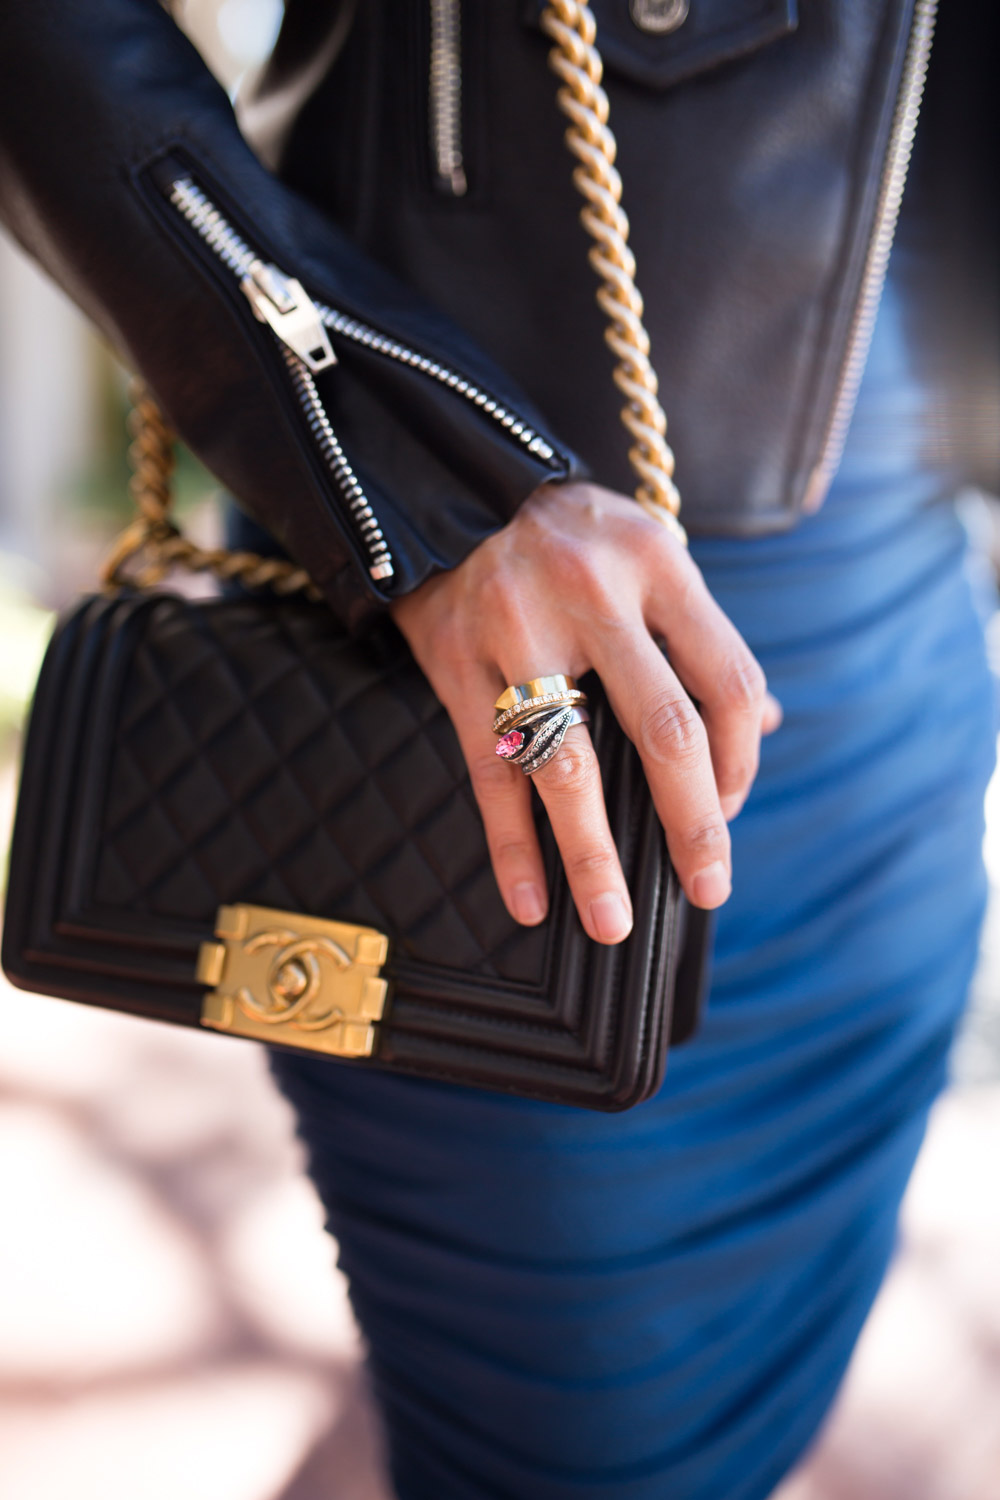 chanel boy bag and iosselliani ring stack